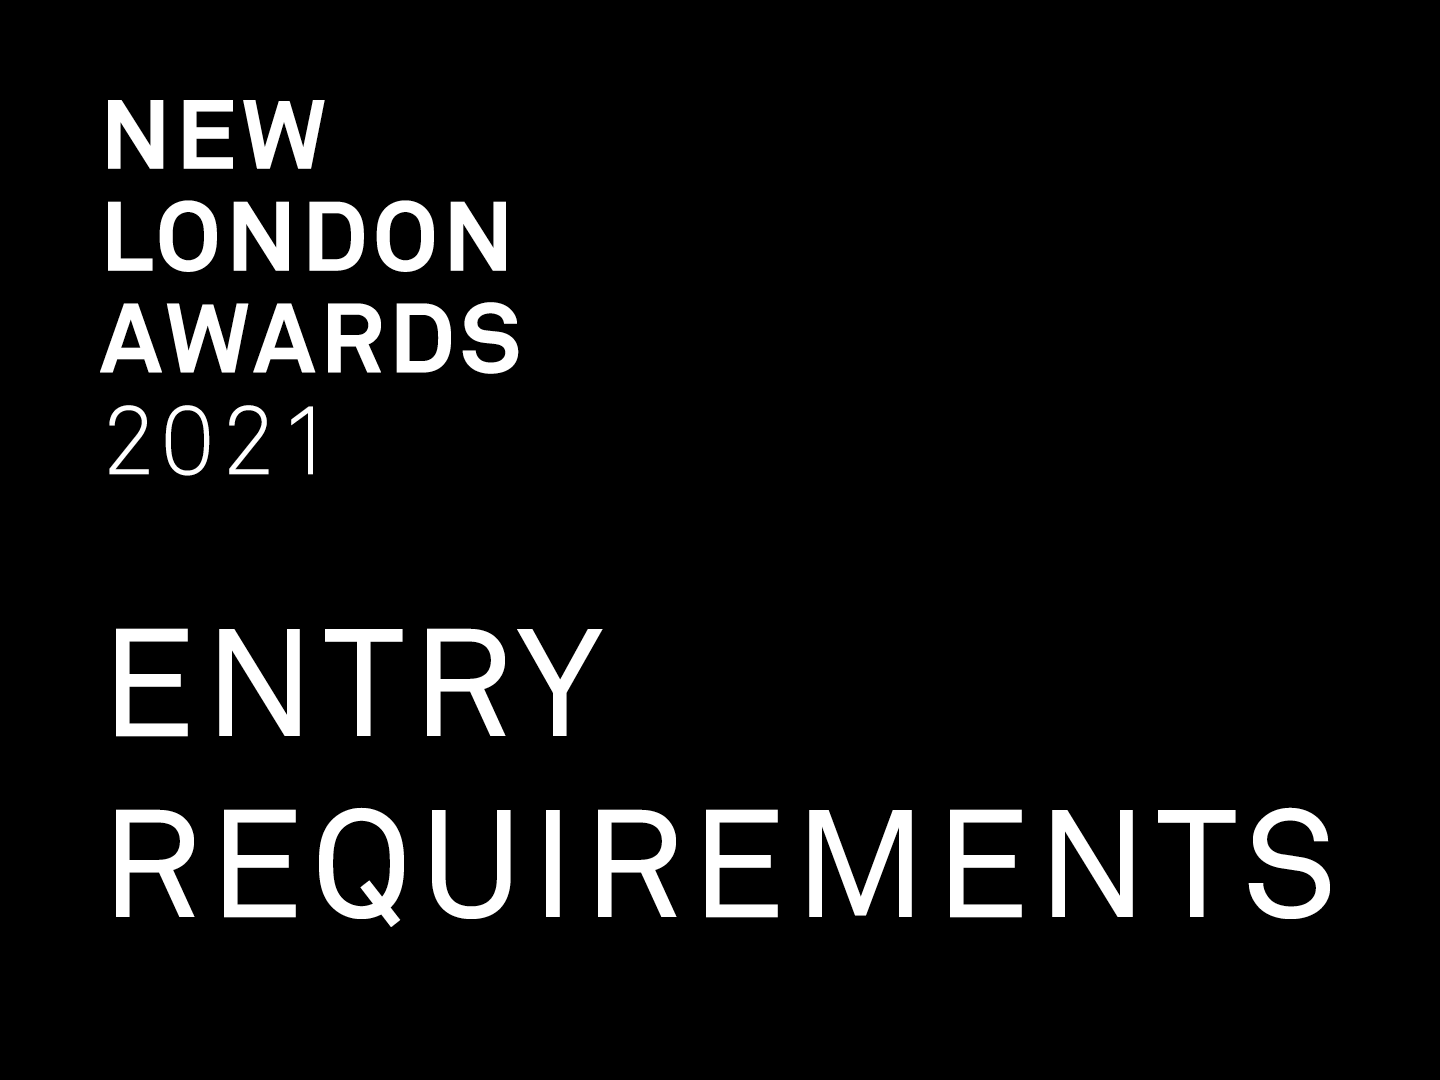 New London Awards 2021 - Entry Requirements